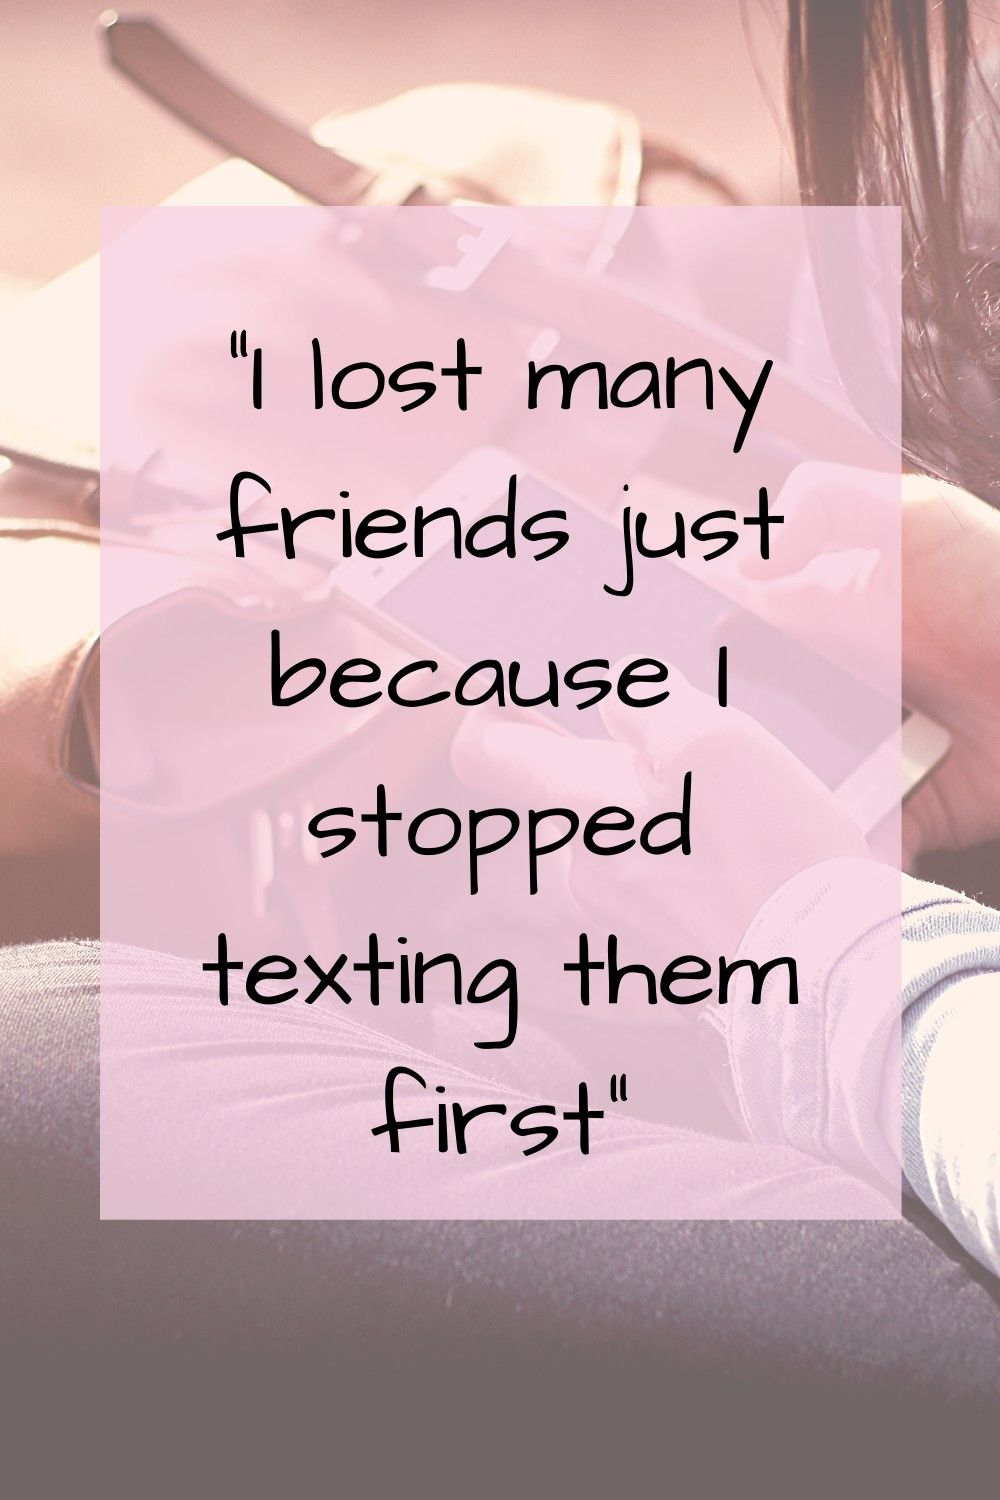 Maintaining Friendships How To Deal With Losing A Friend Losing Friendship Quotes Bad Friendship Quotes Failed Friendship Quotes